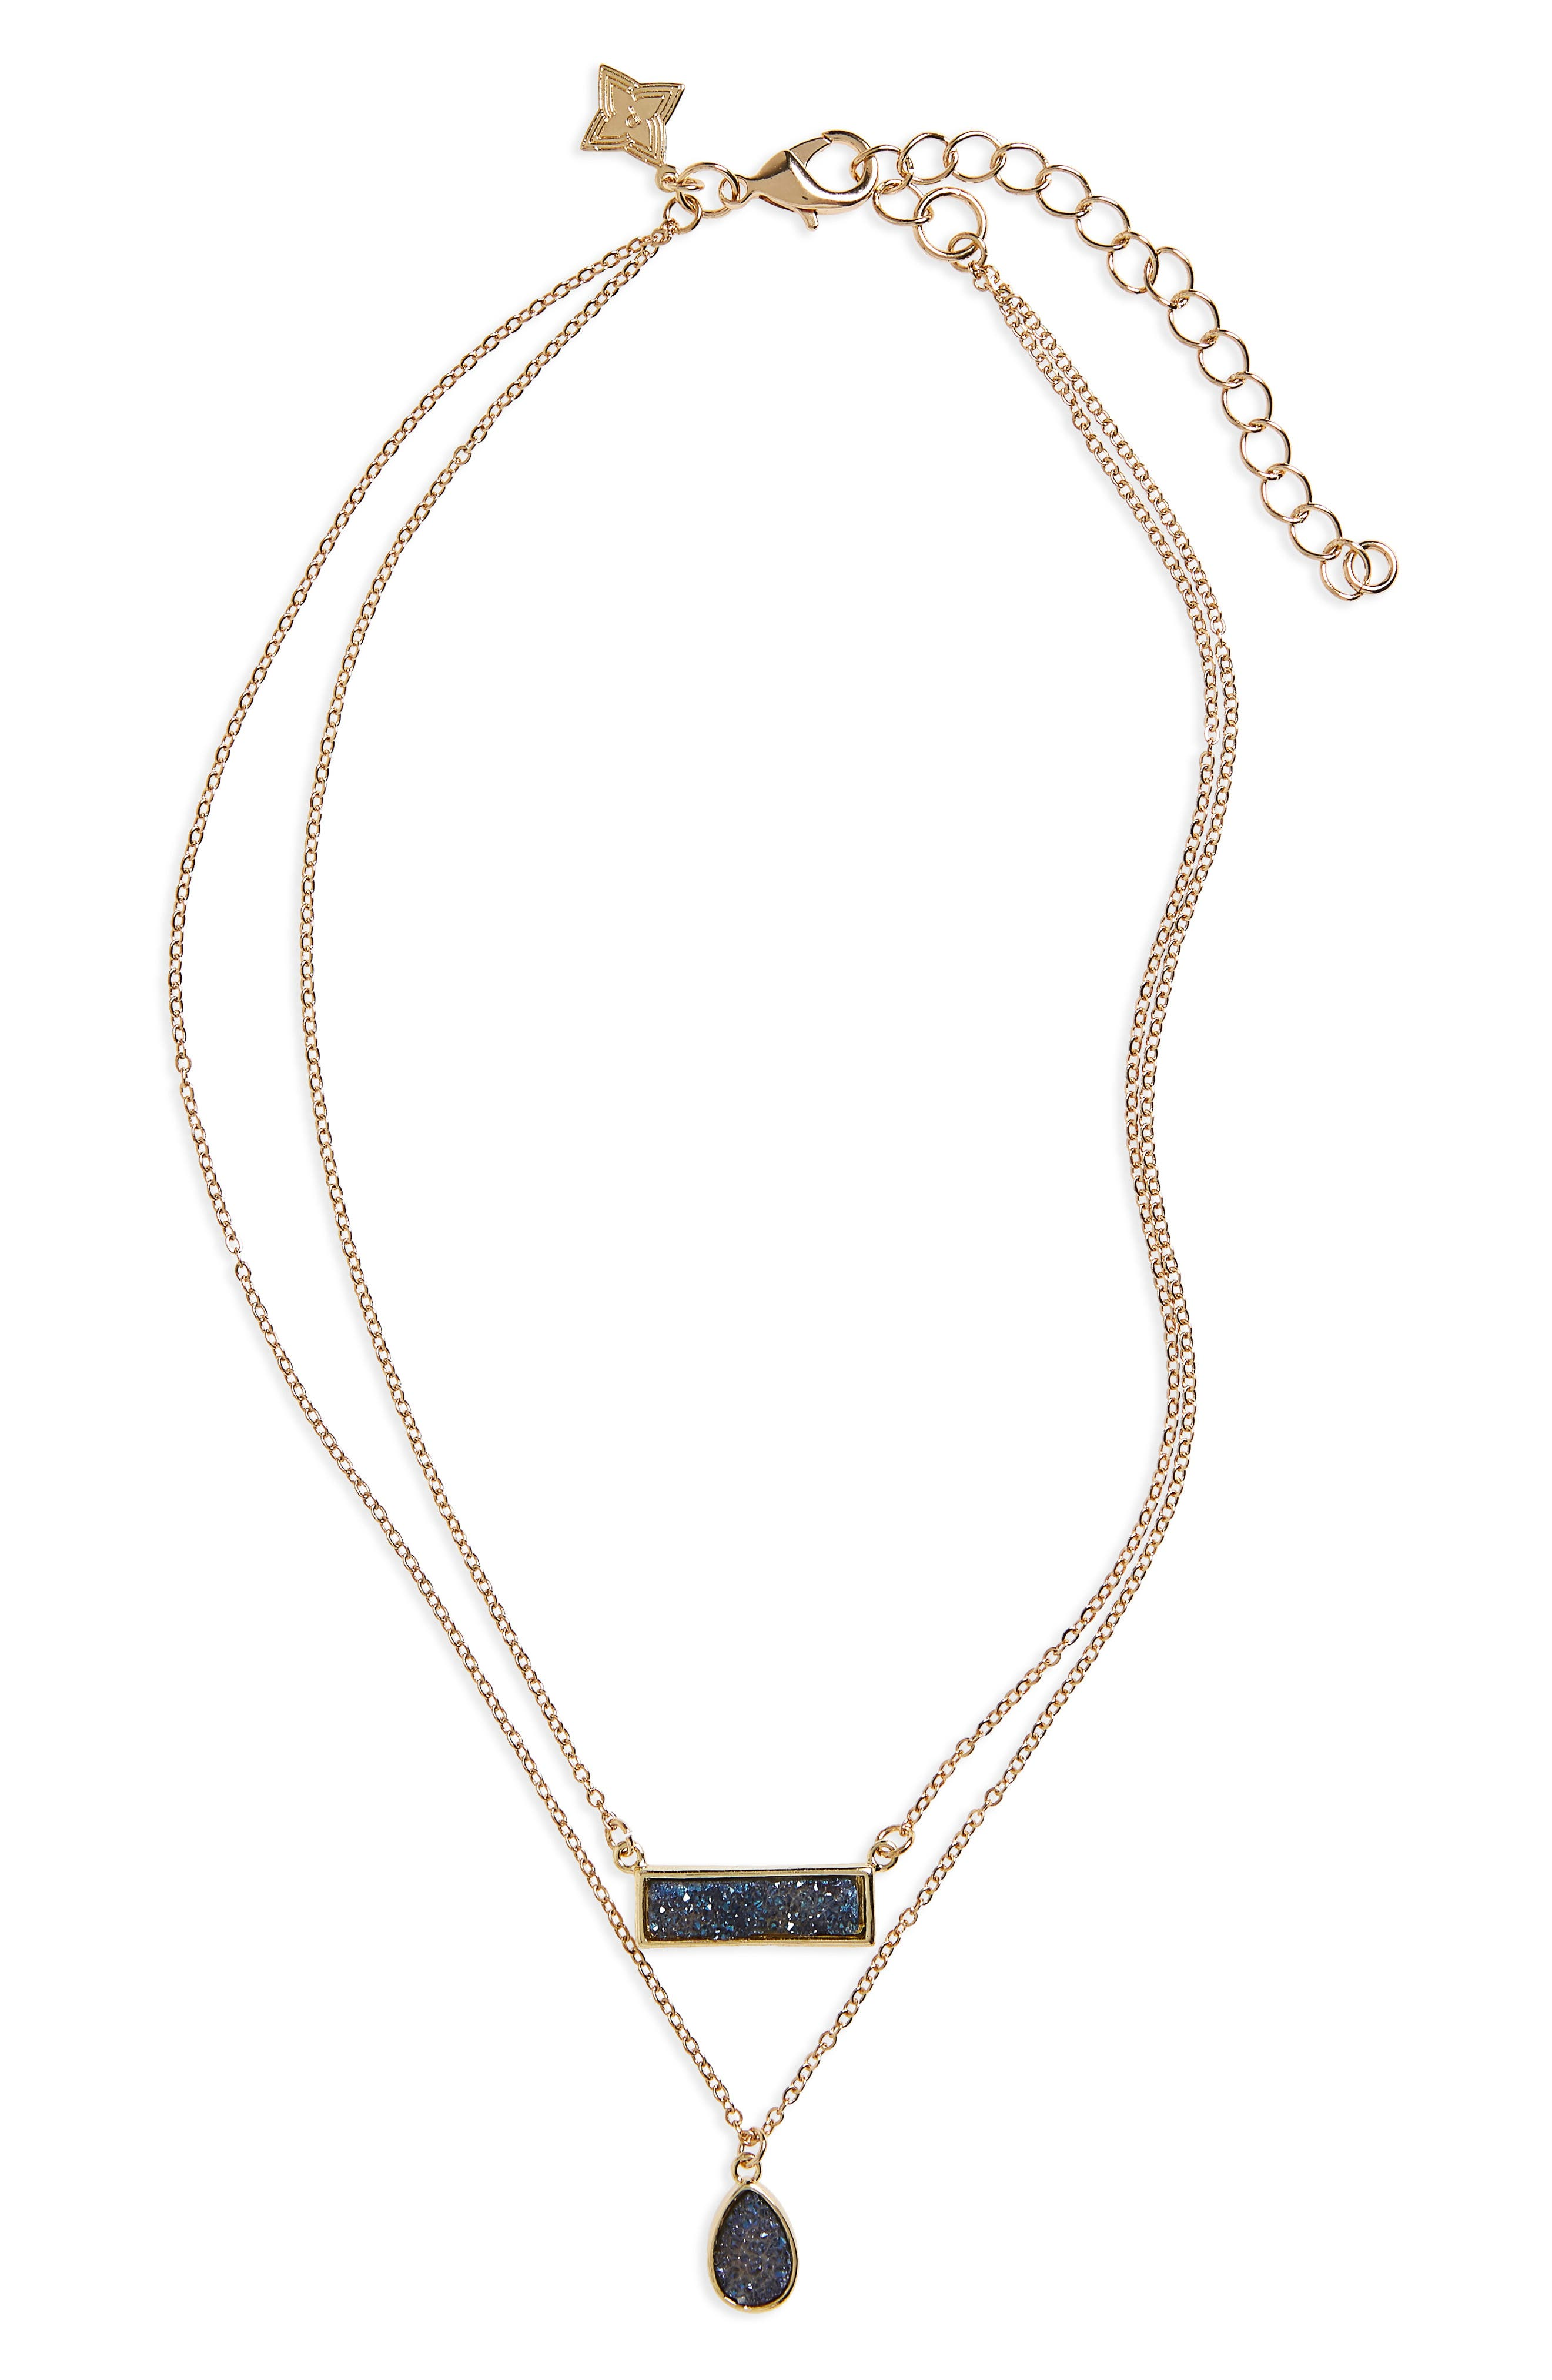 Drusy Multistrand Necklace,                             Main thumbnail 1, color,                             410